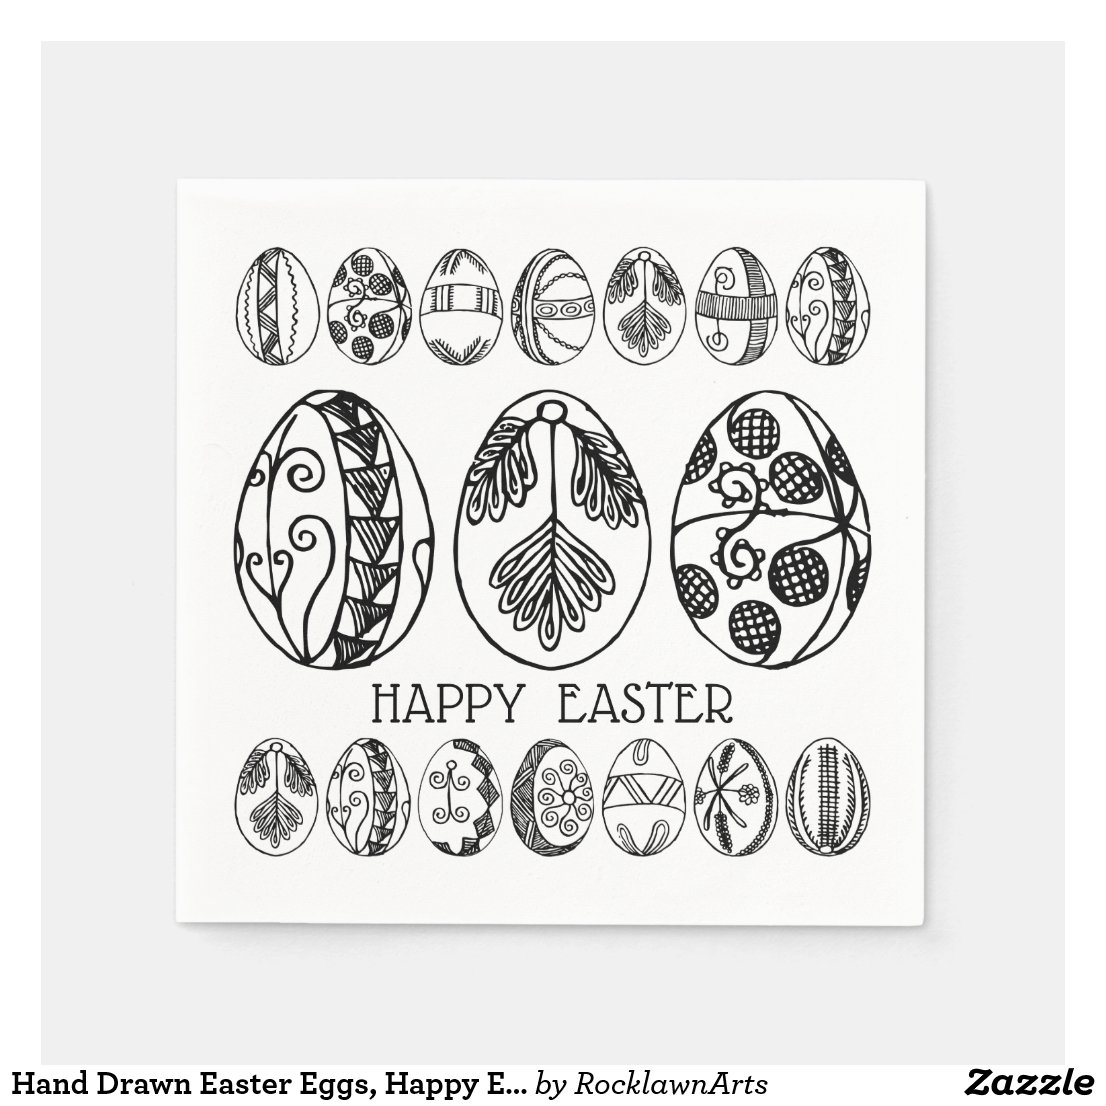 Hand Drawn Easter Eggs, Happy Easter Brunch Party Paper Napkin